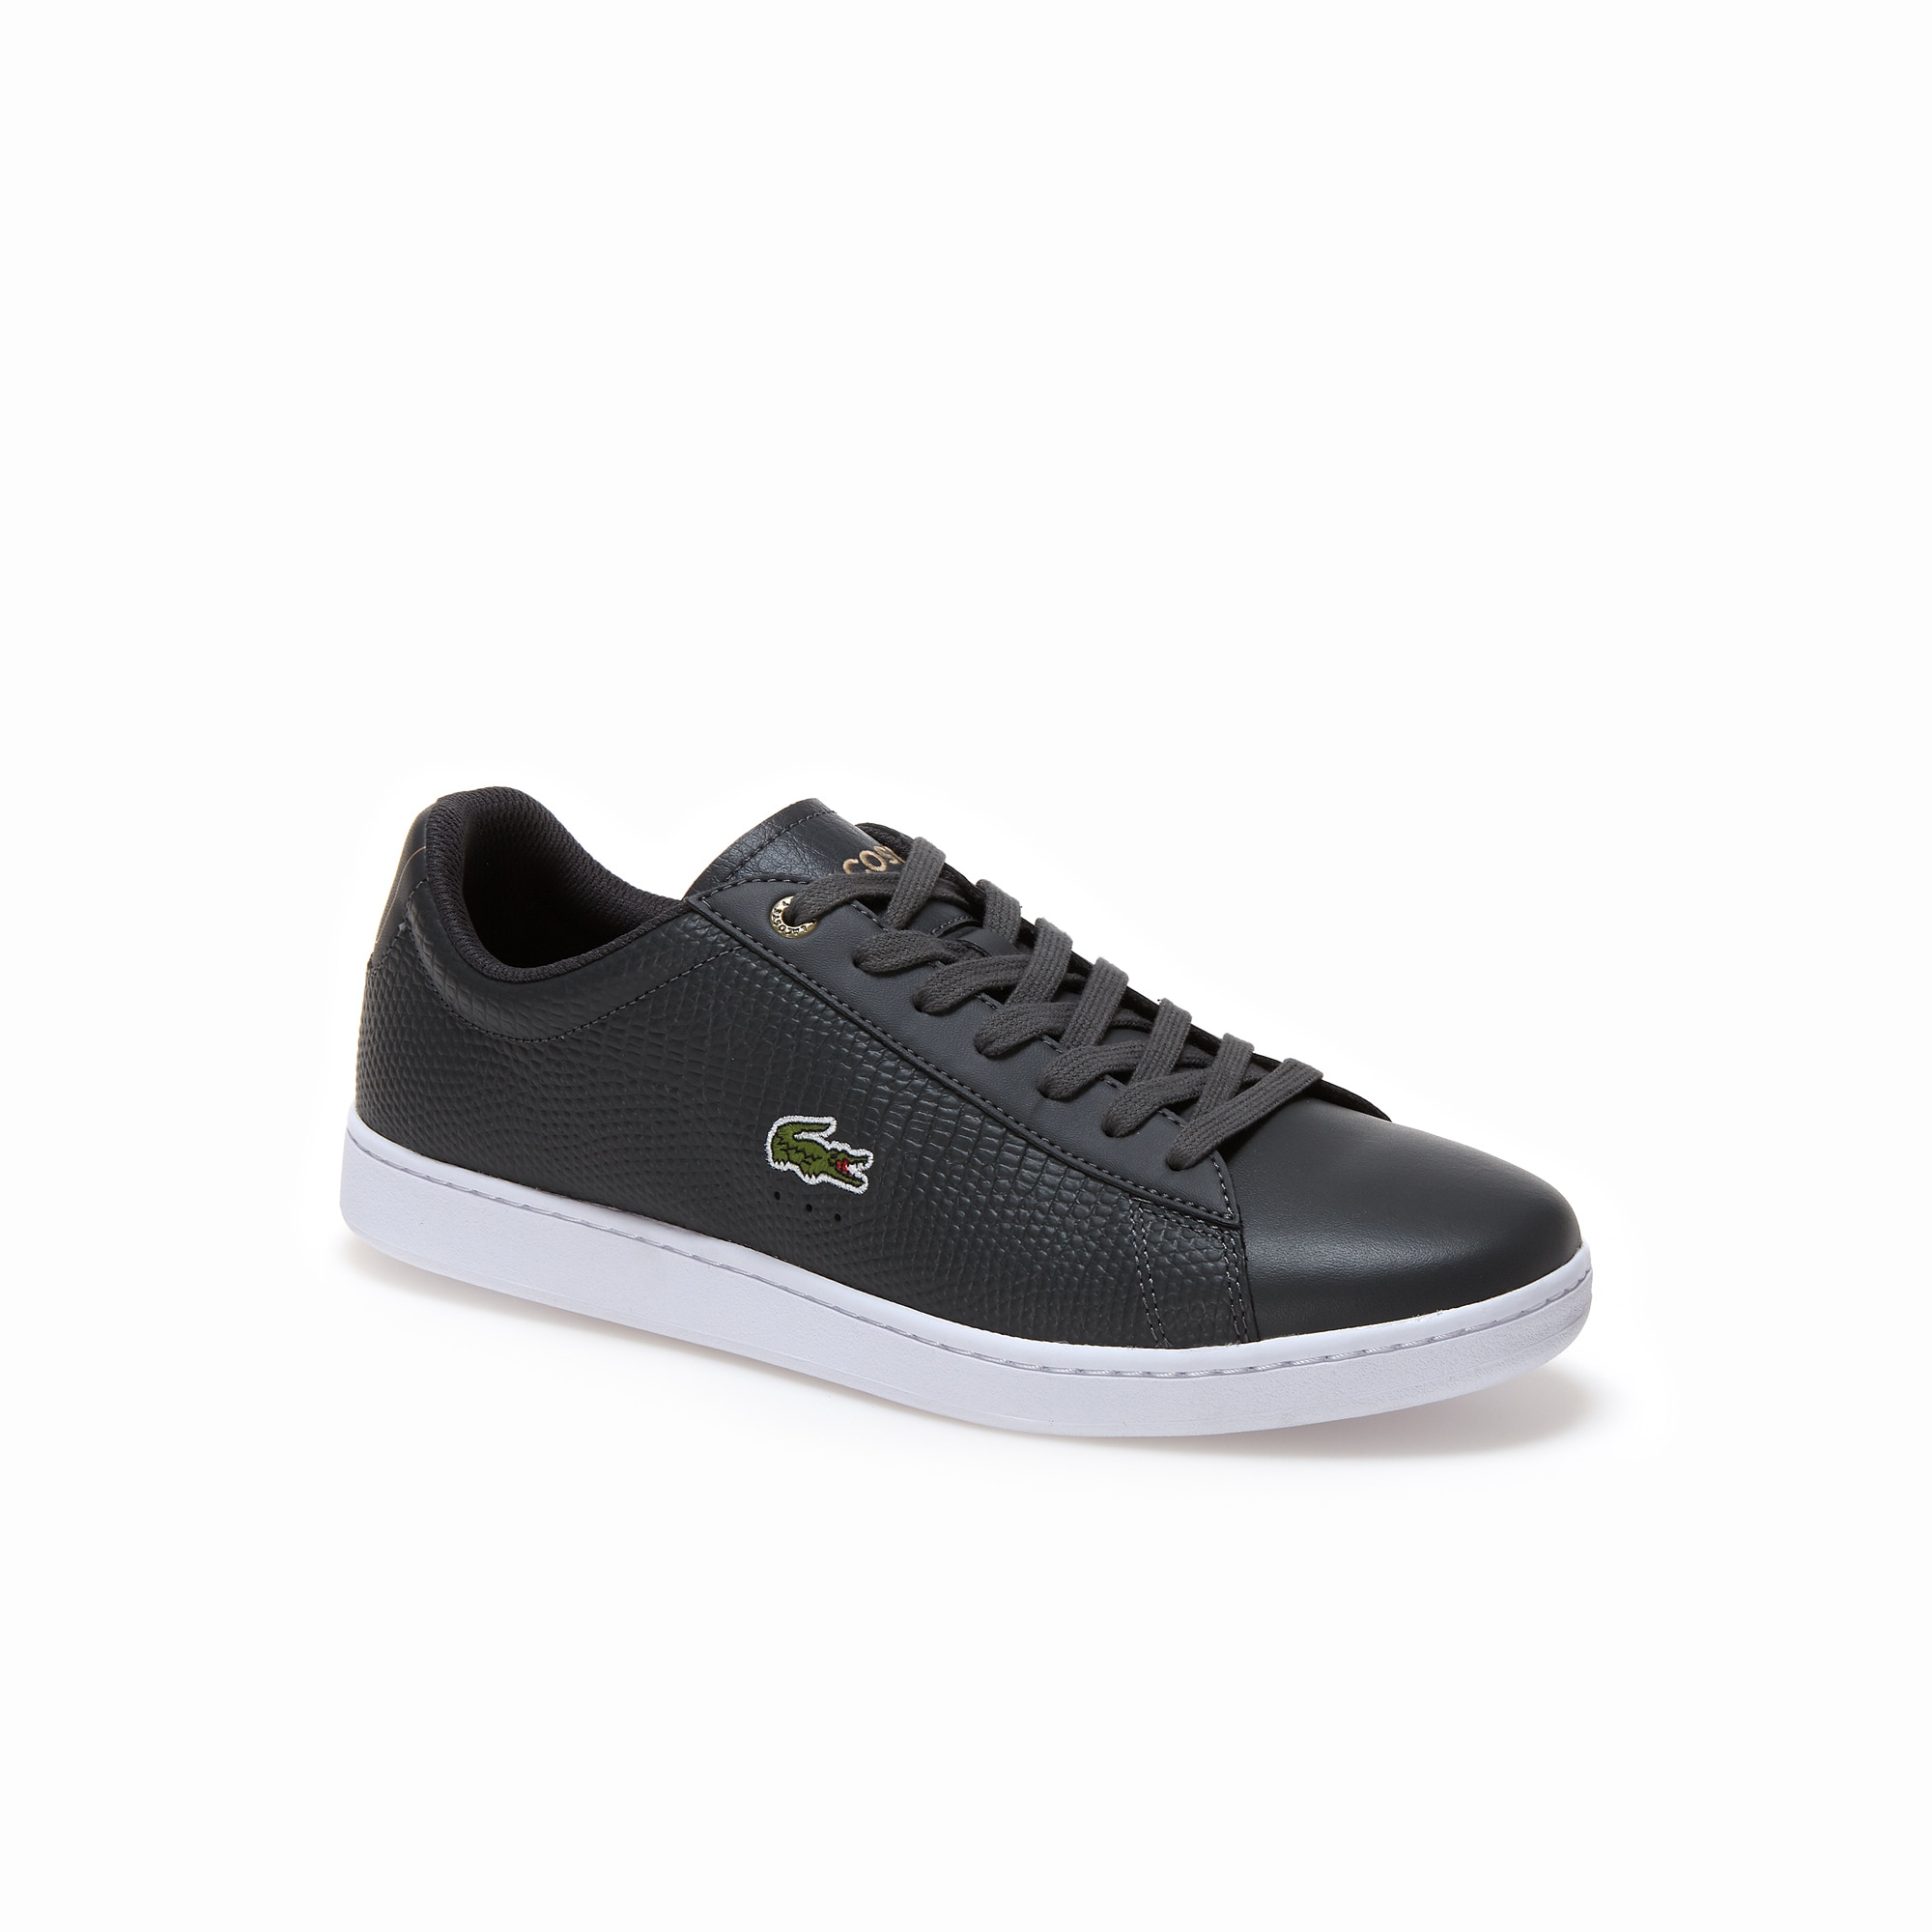 Men's Carnaby Evo Nappa Leather Trainers